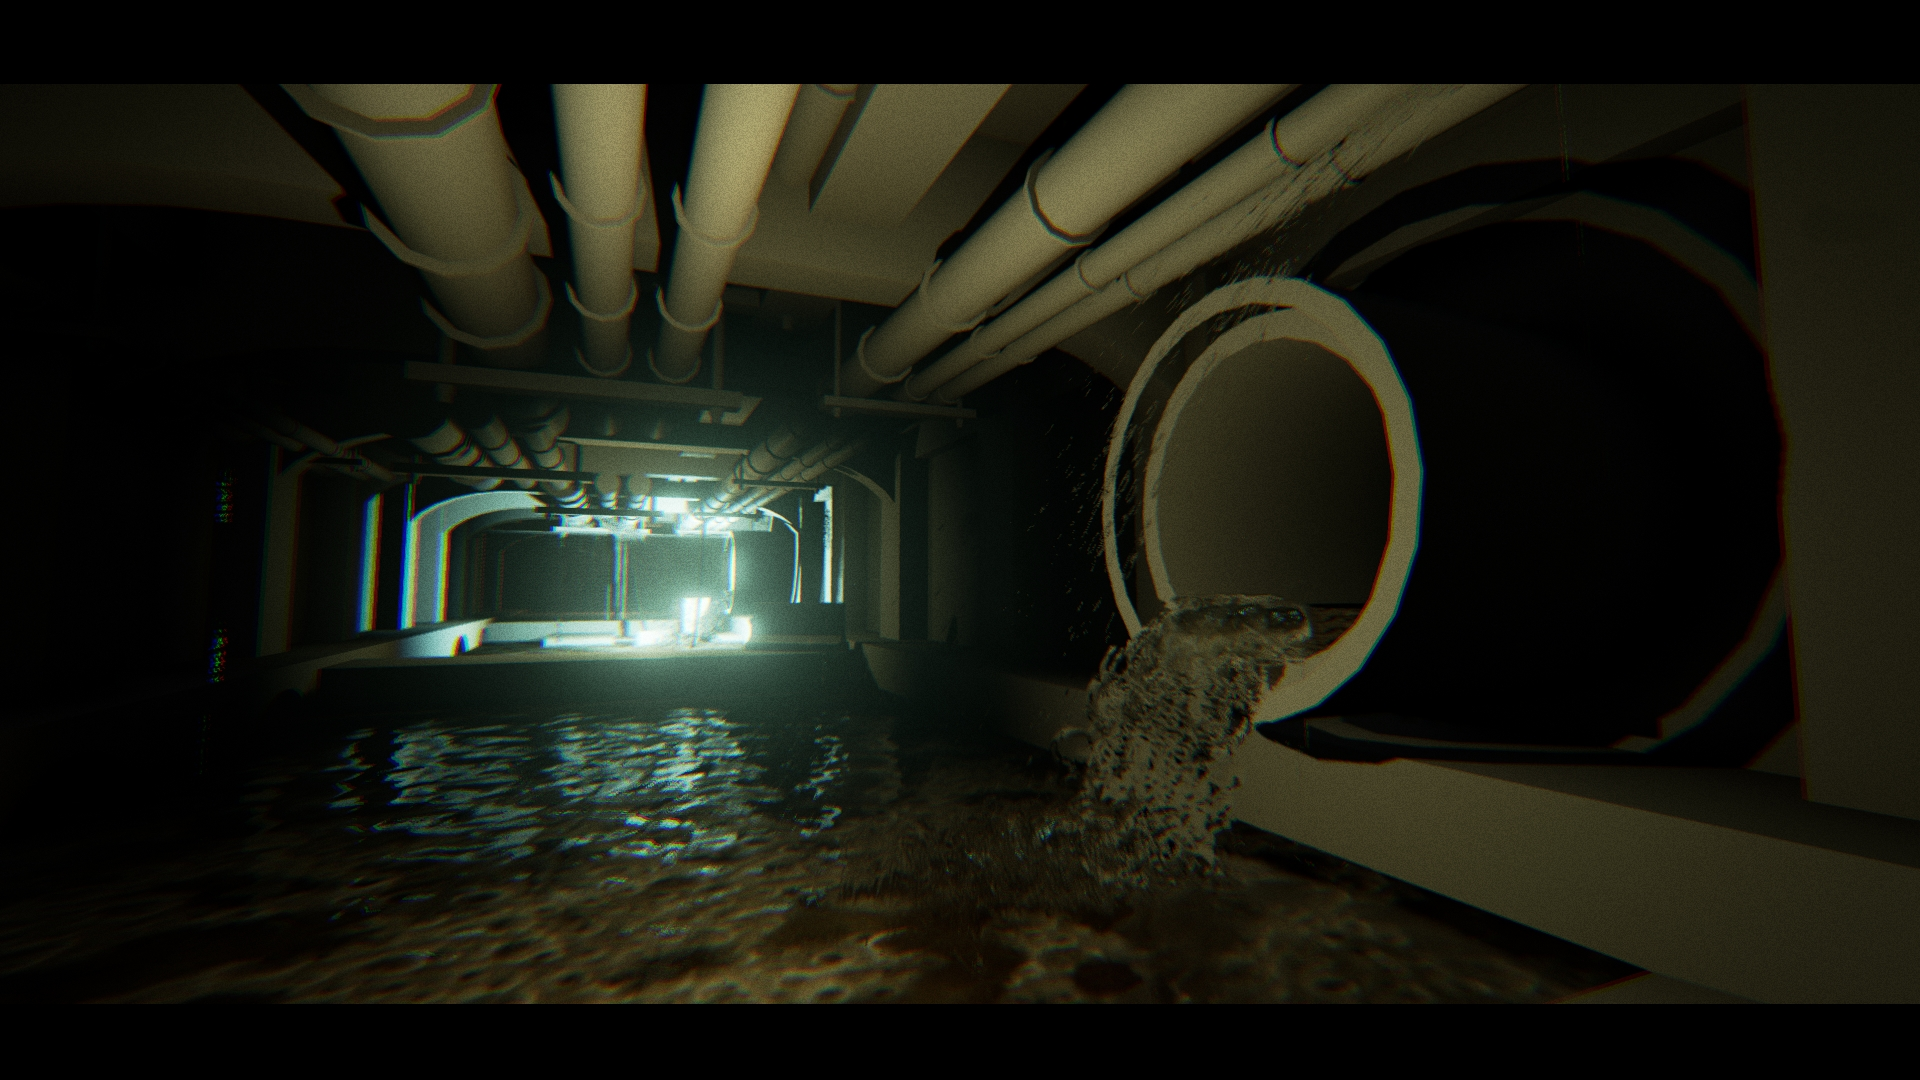 Sewer Tunnel Particles Test indie game developer collaboration find artist programmer musician